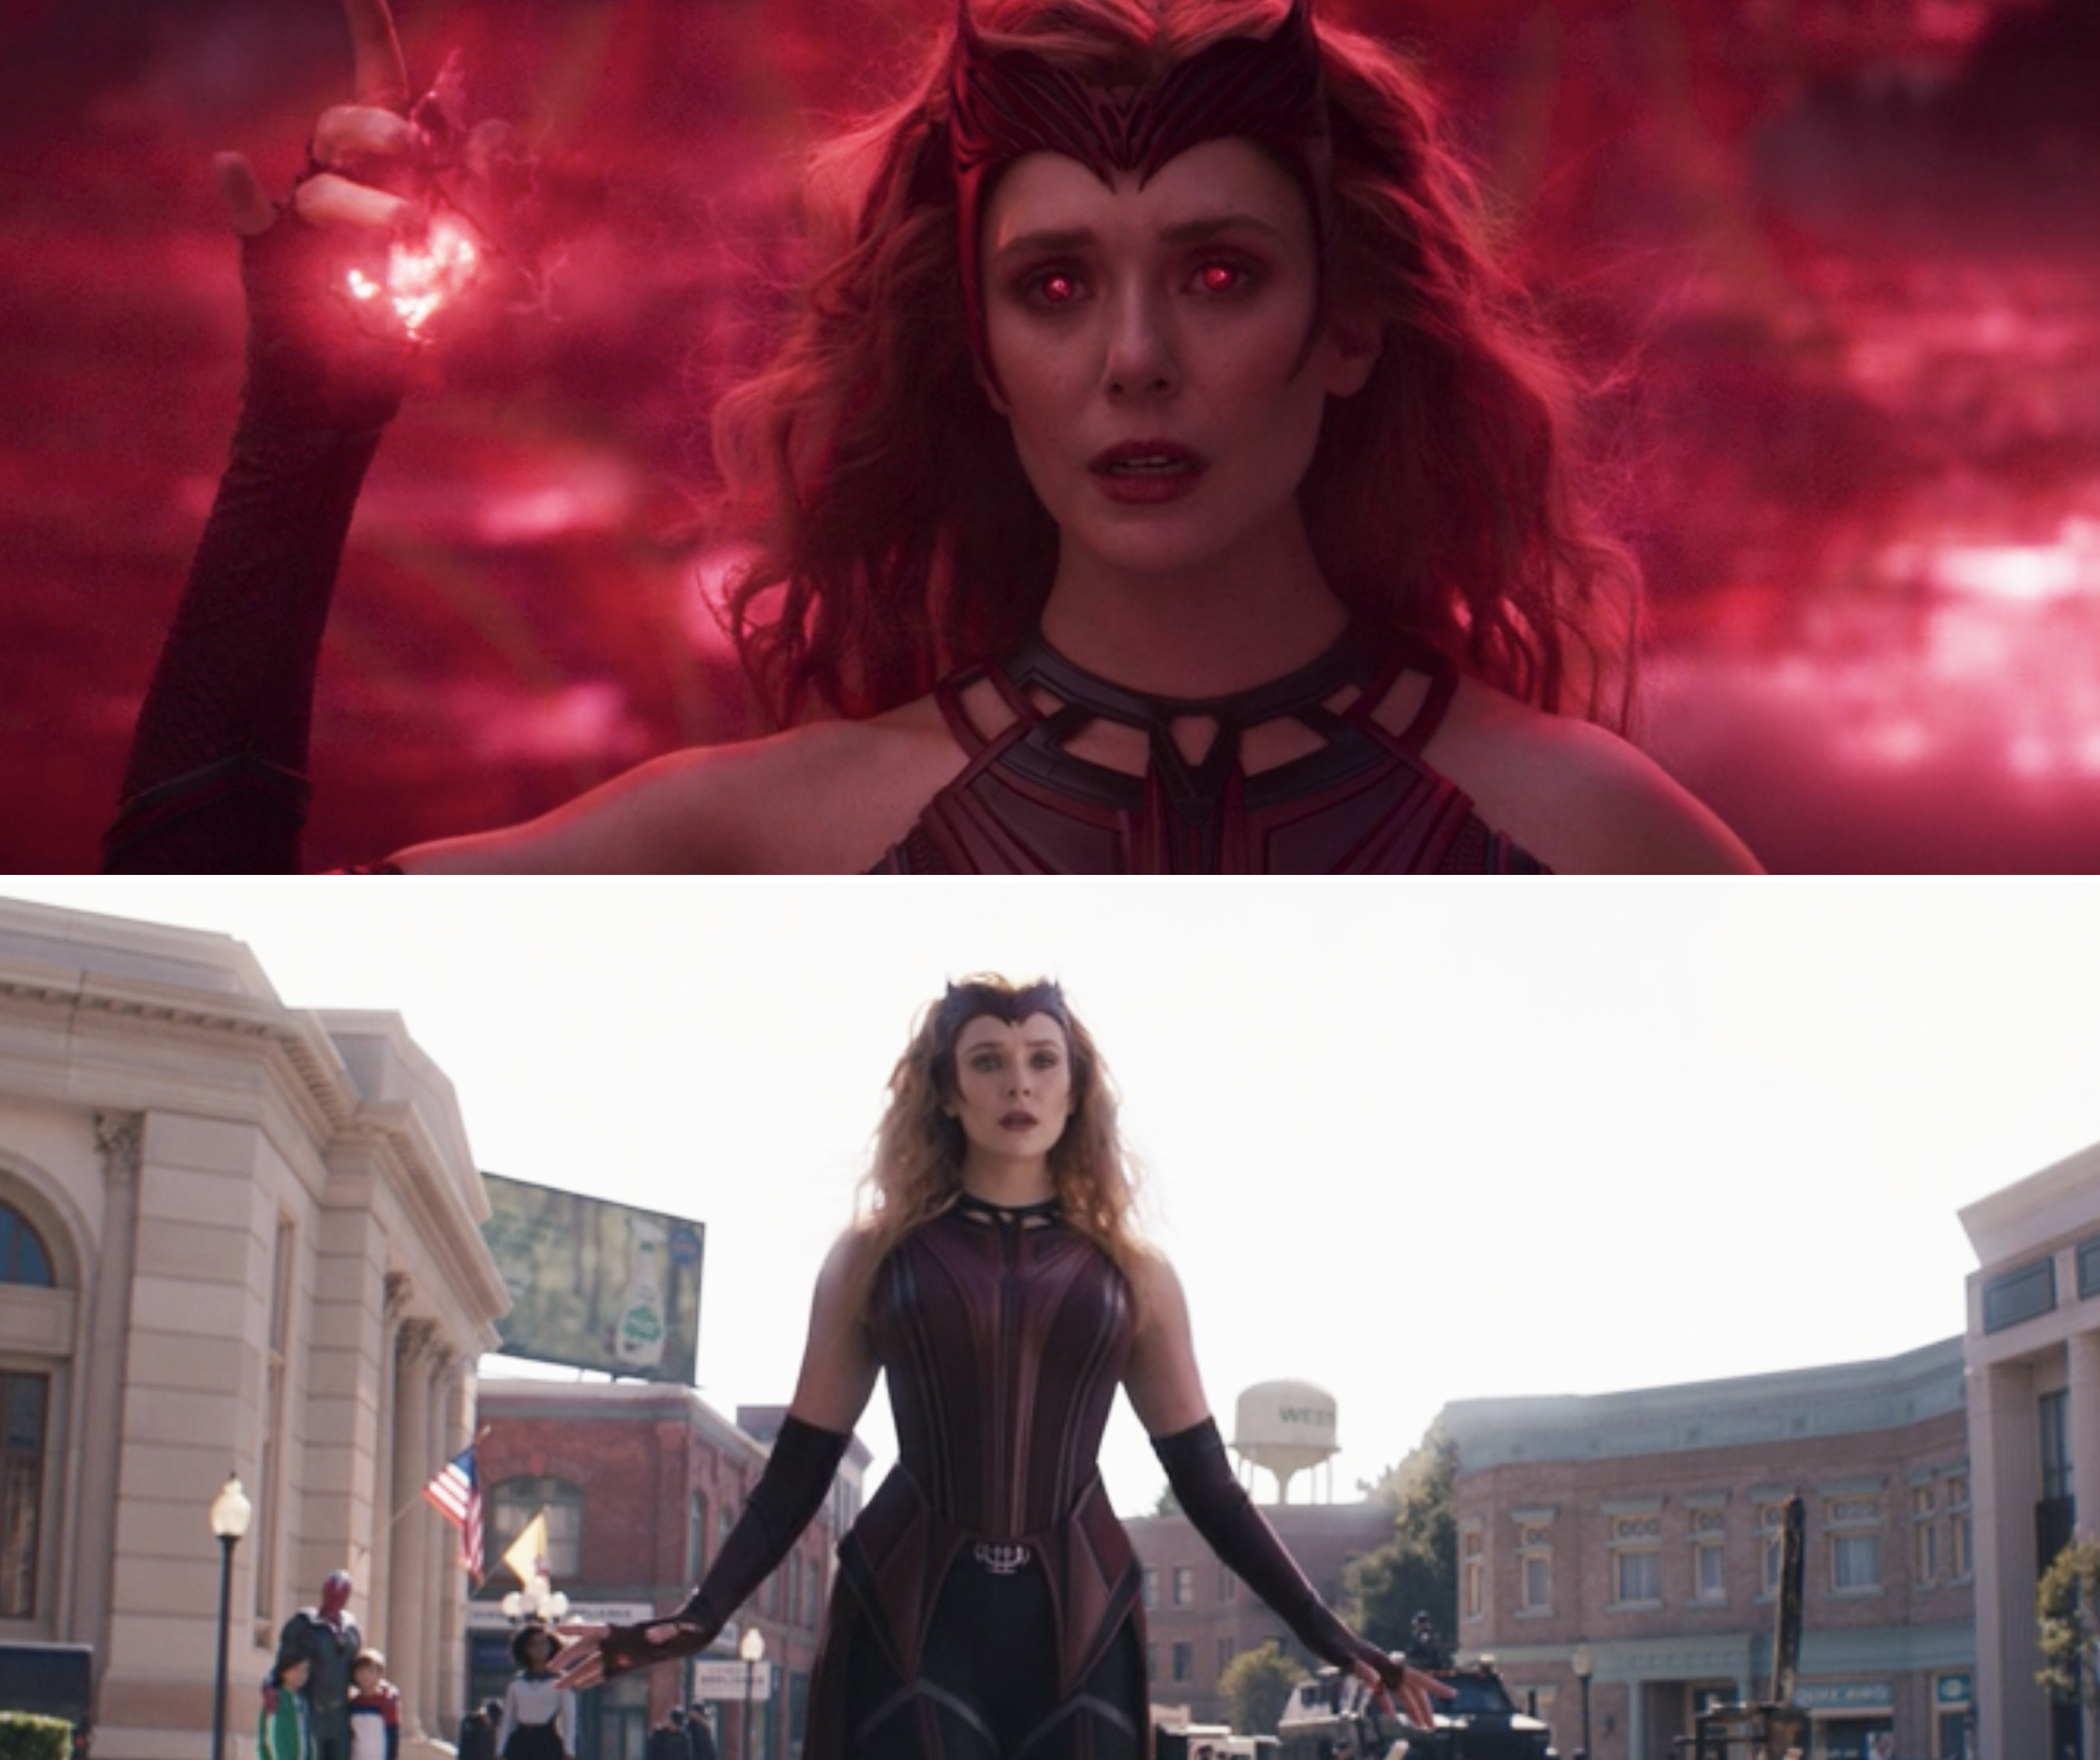 Wanda in her Scarlet Witch costume